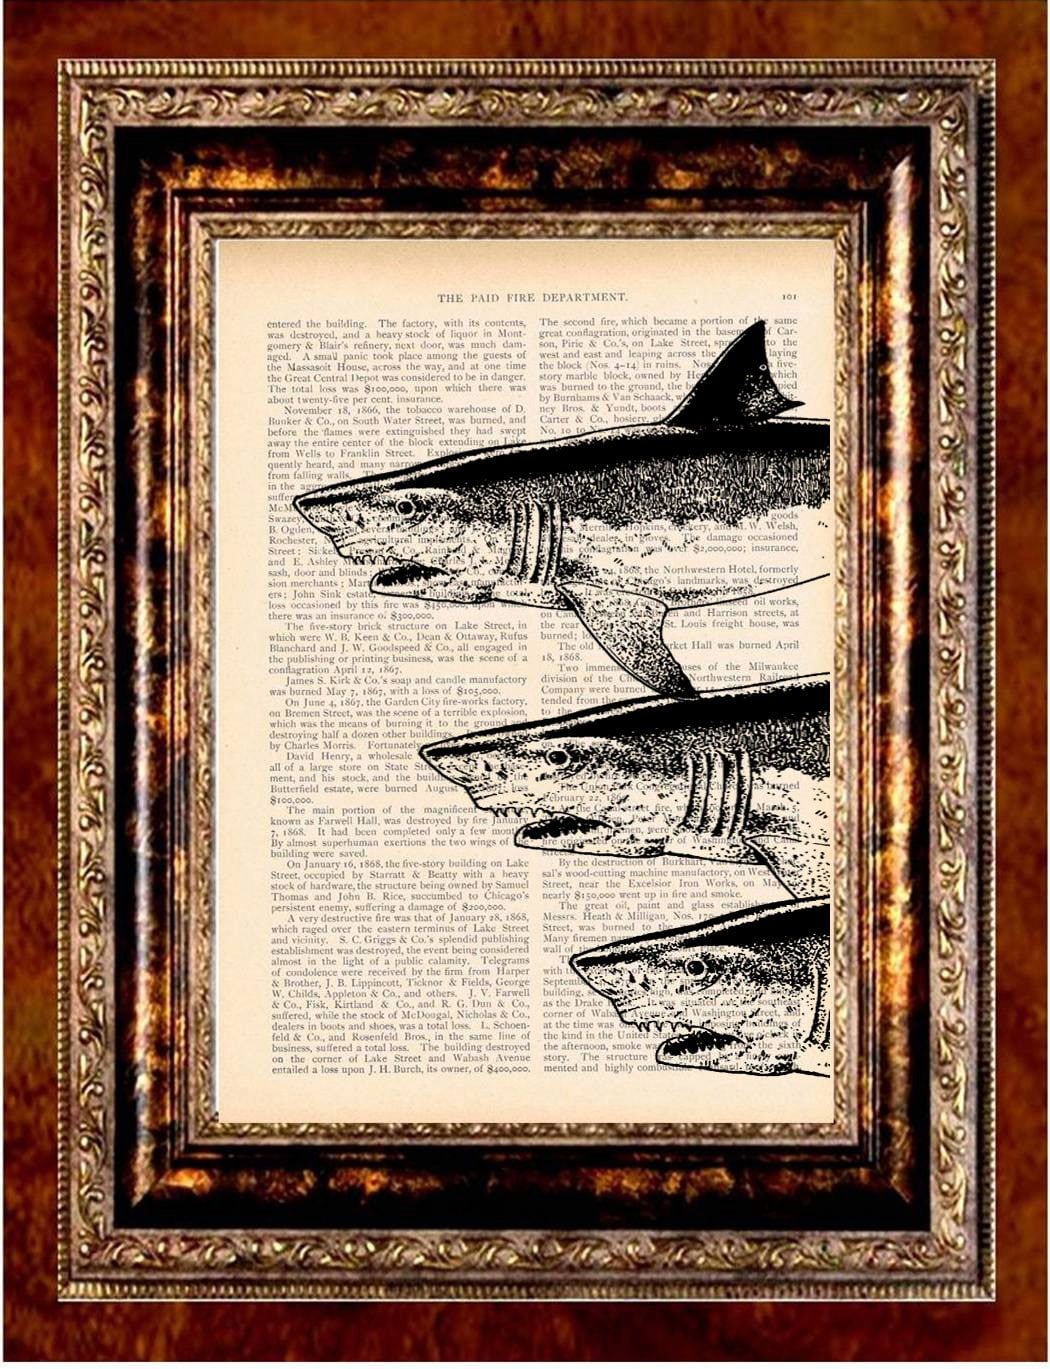 THREE SHARKS Vintage Art Print Antique 1800's Book Page or Dictionary Page Upcycled Recycled - newdayprints